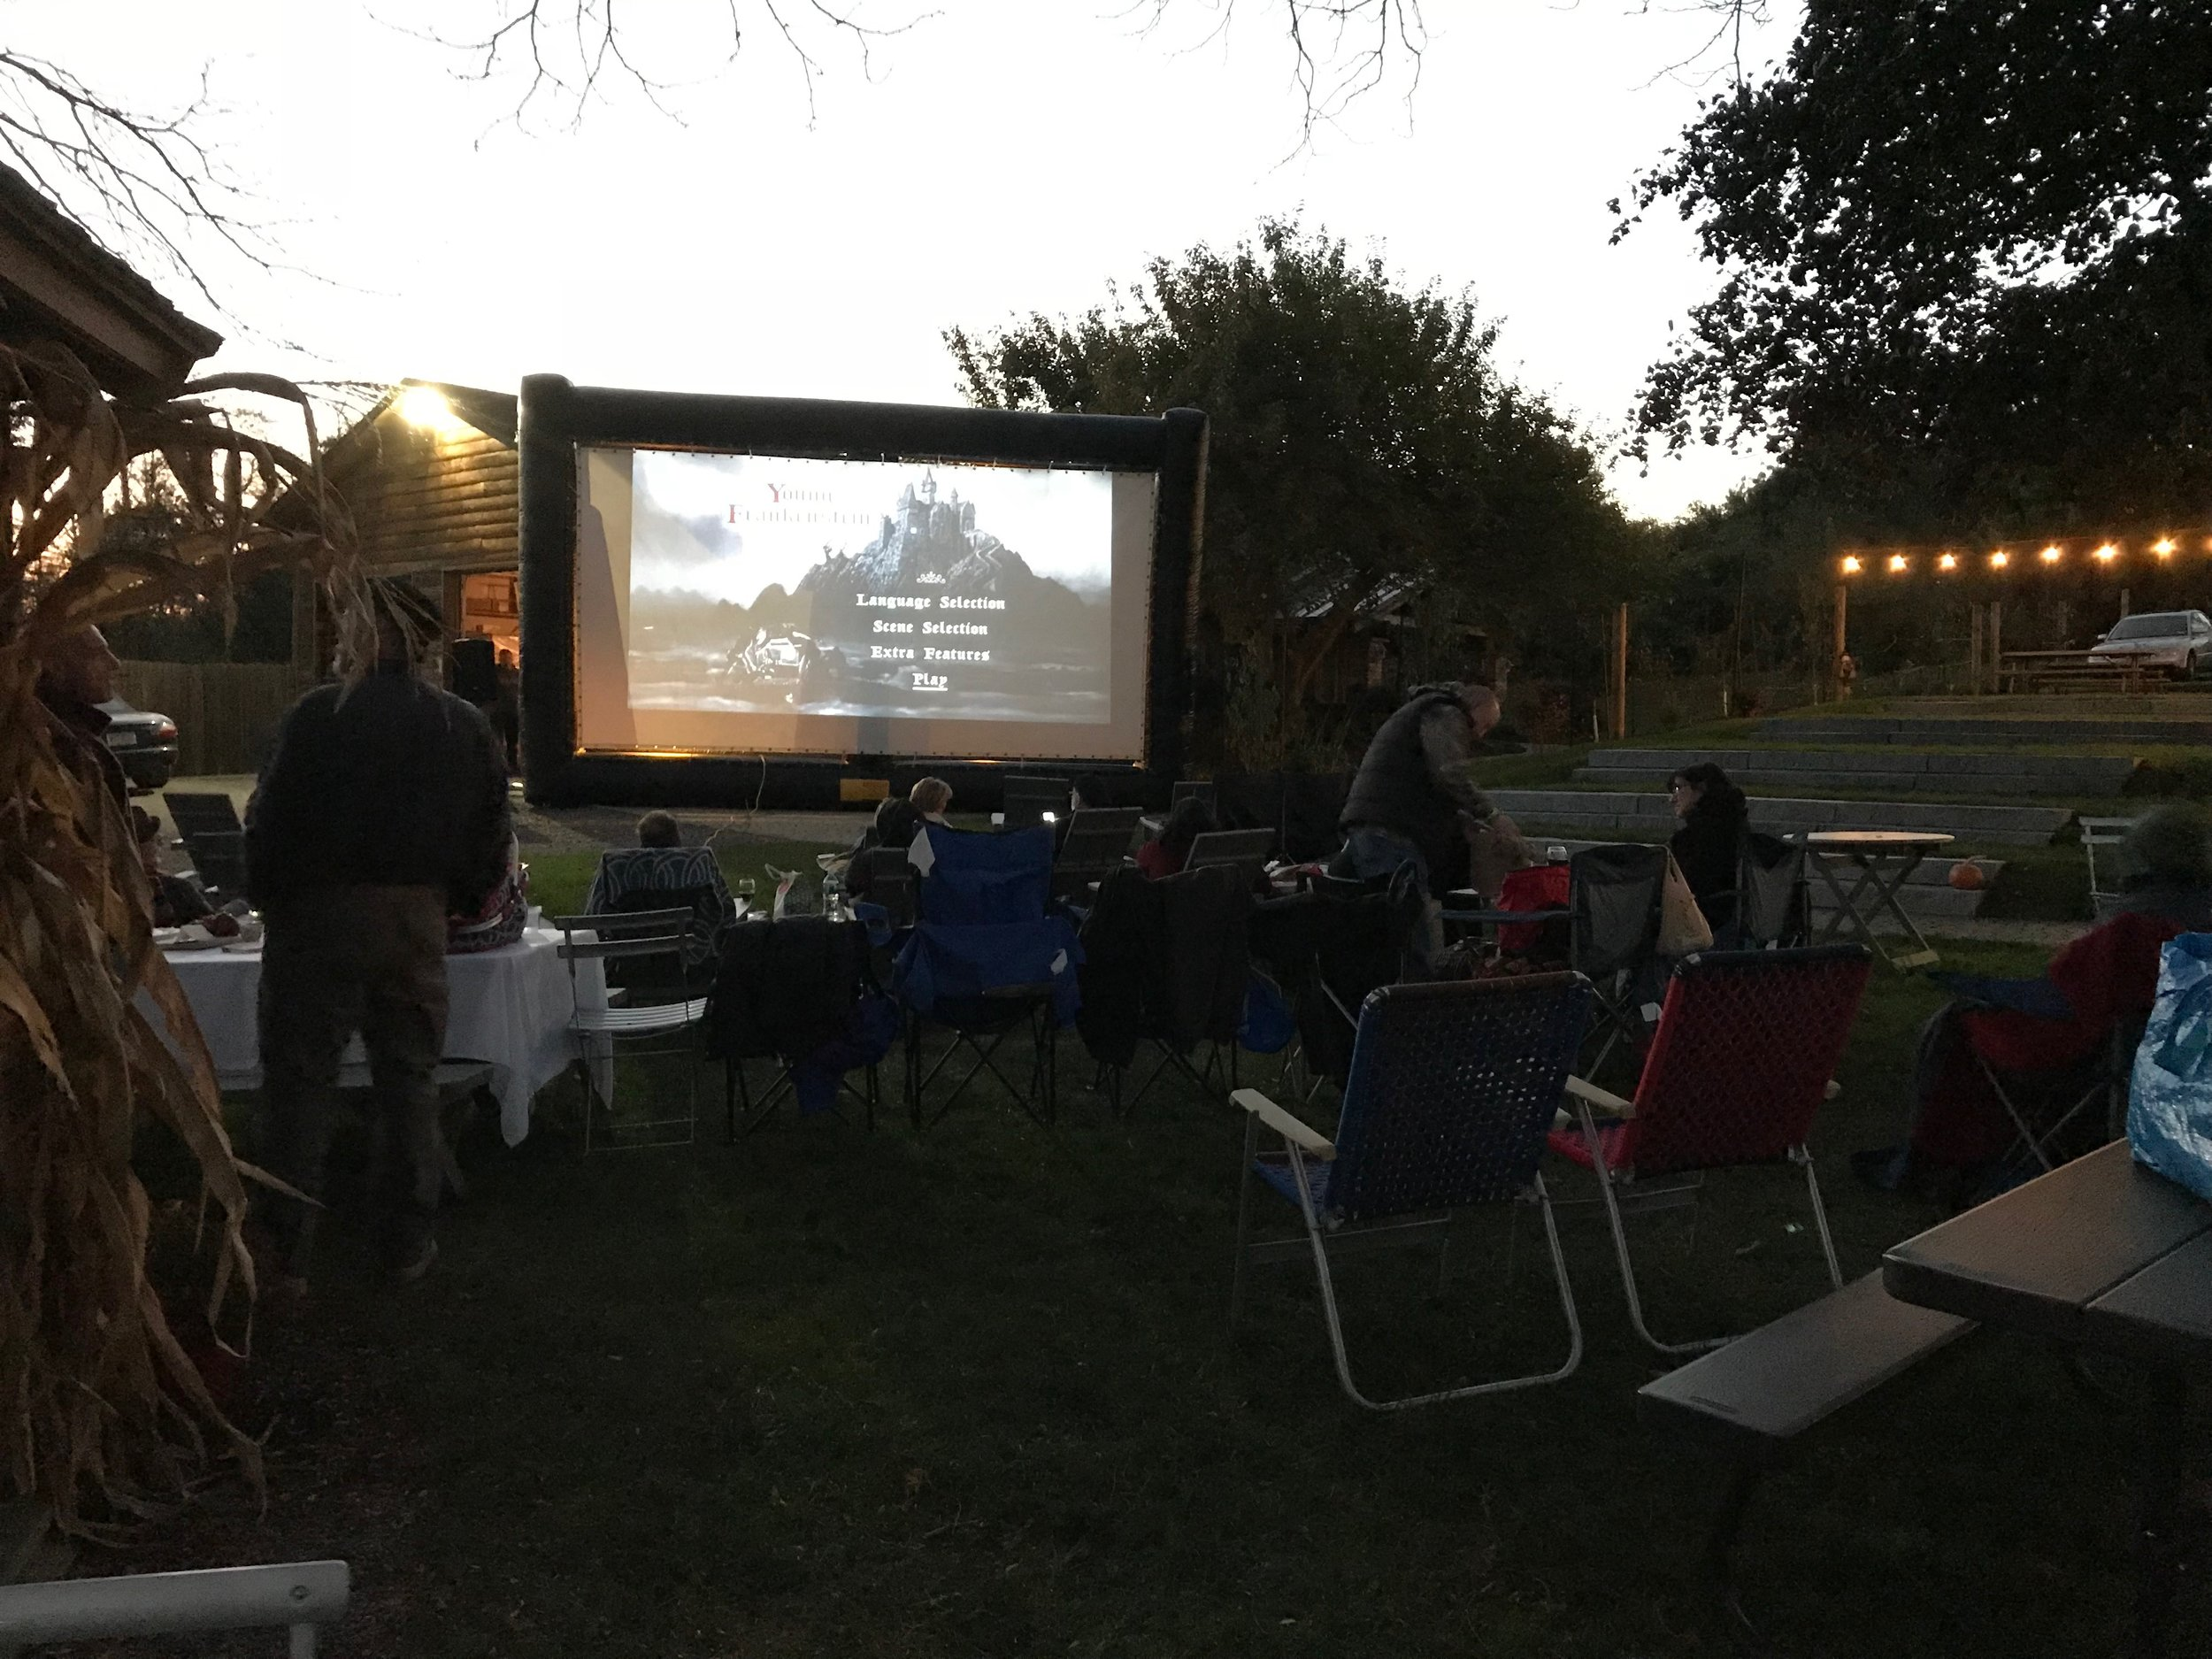 From backyard gatherings to community events, let our team help you customize a festive movie night.